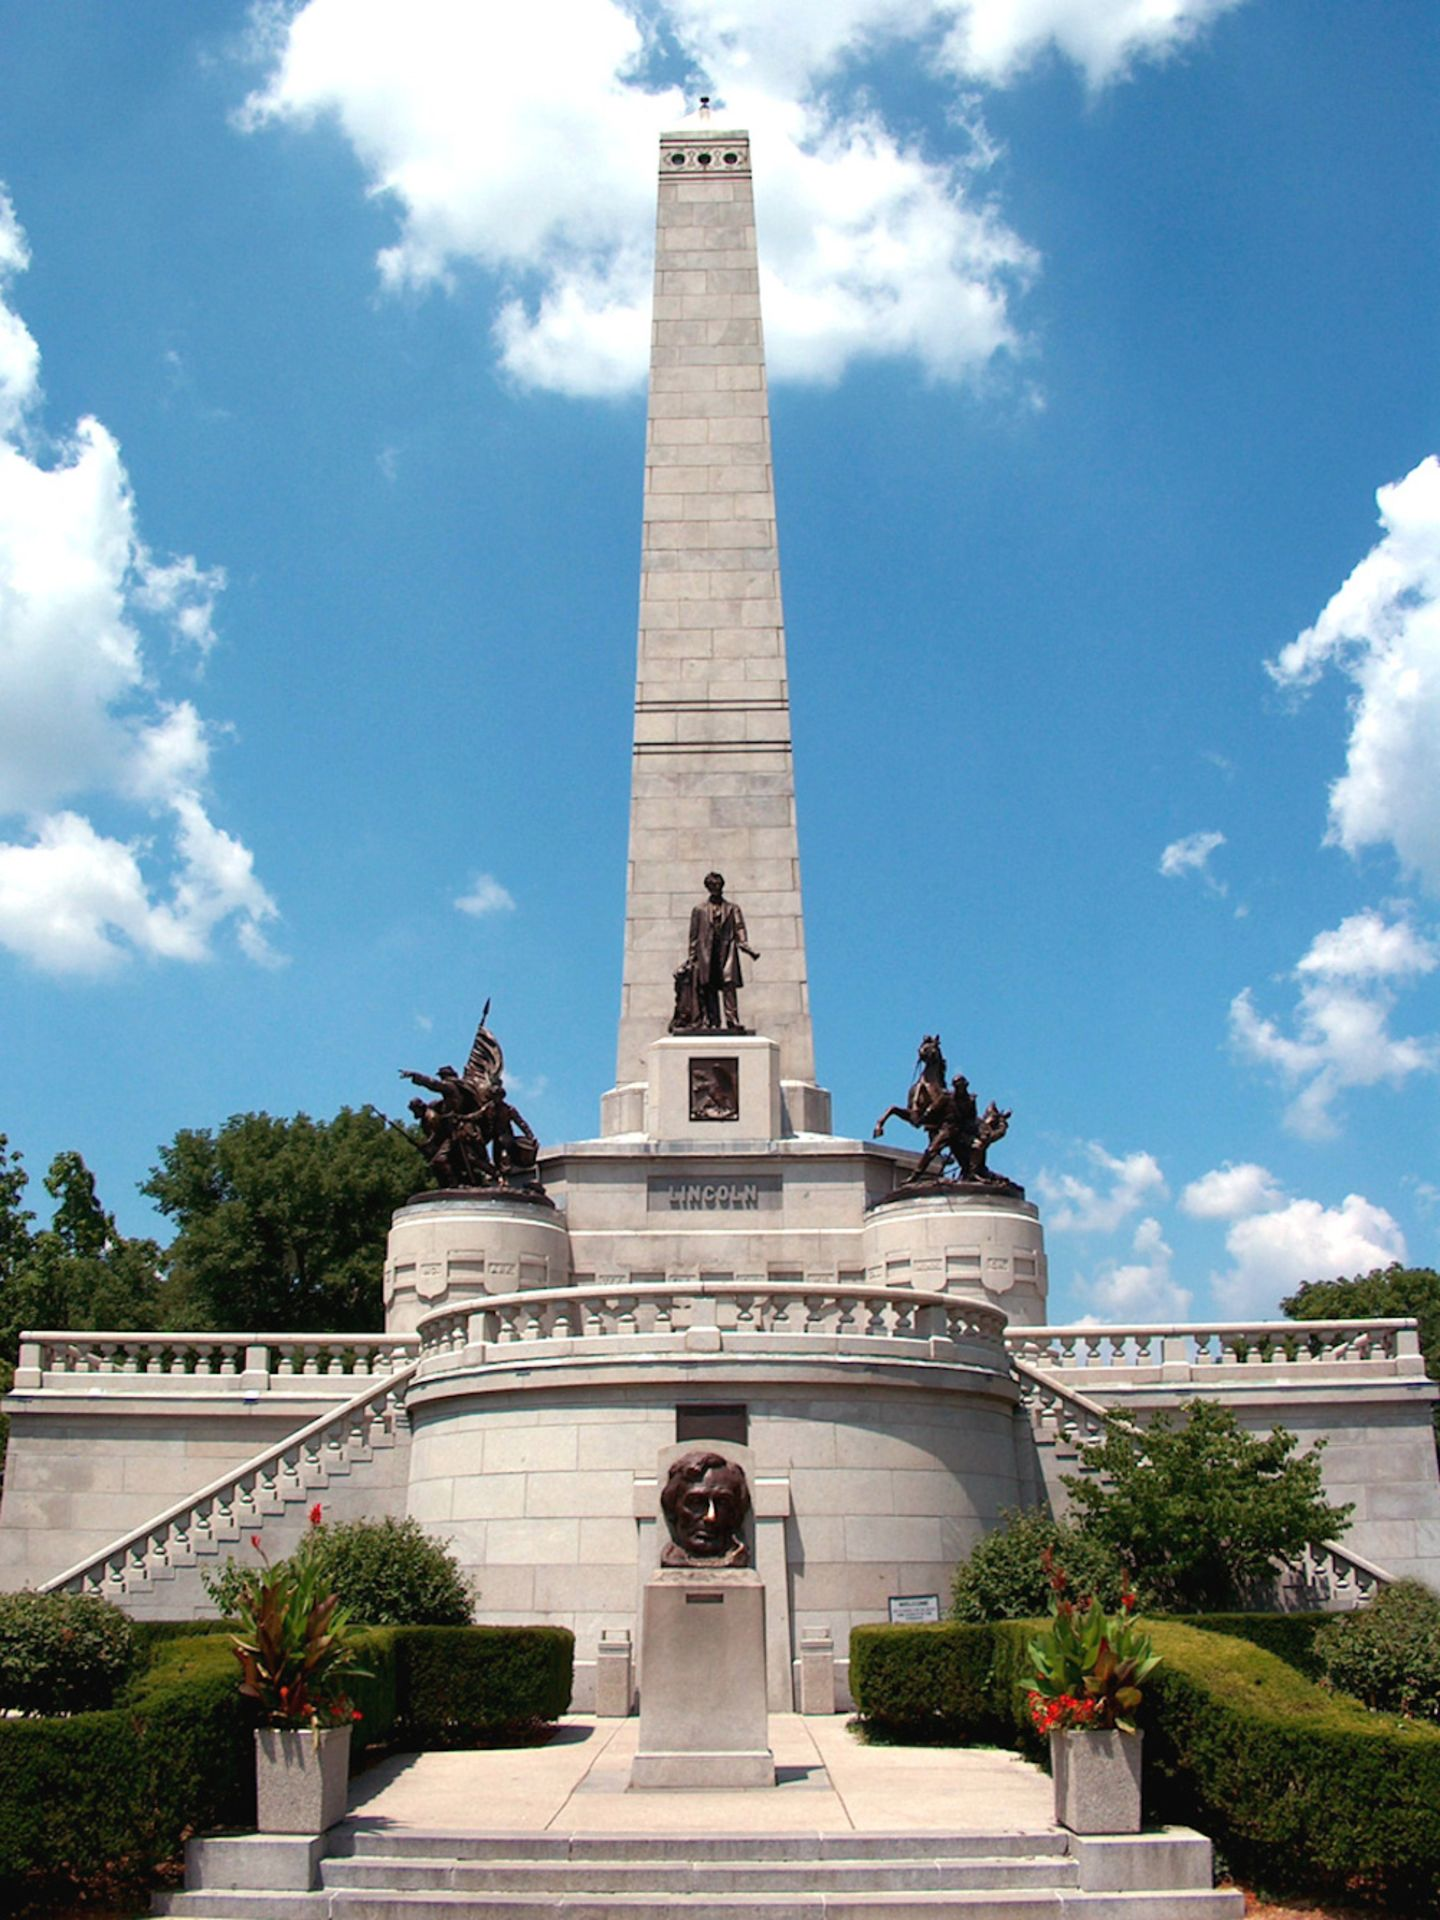 Own Property in Abraham Lincoln's Springfield, Illinois! - Image 9 of 9